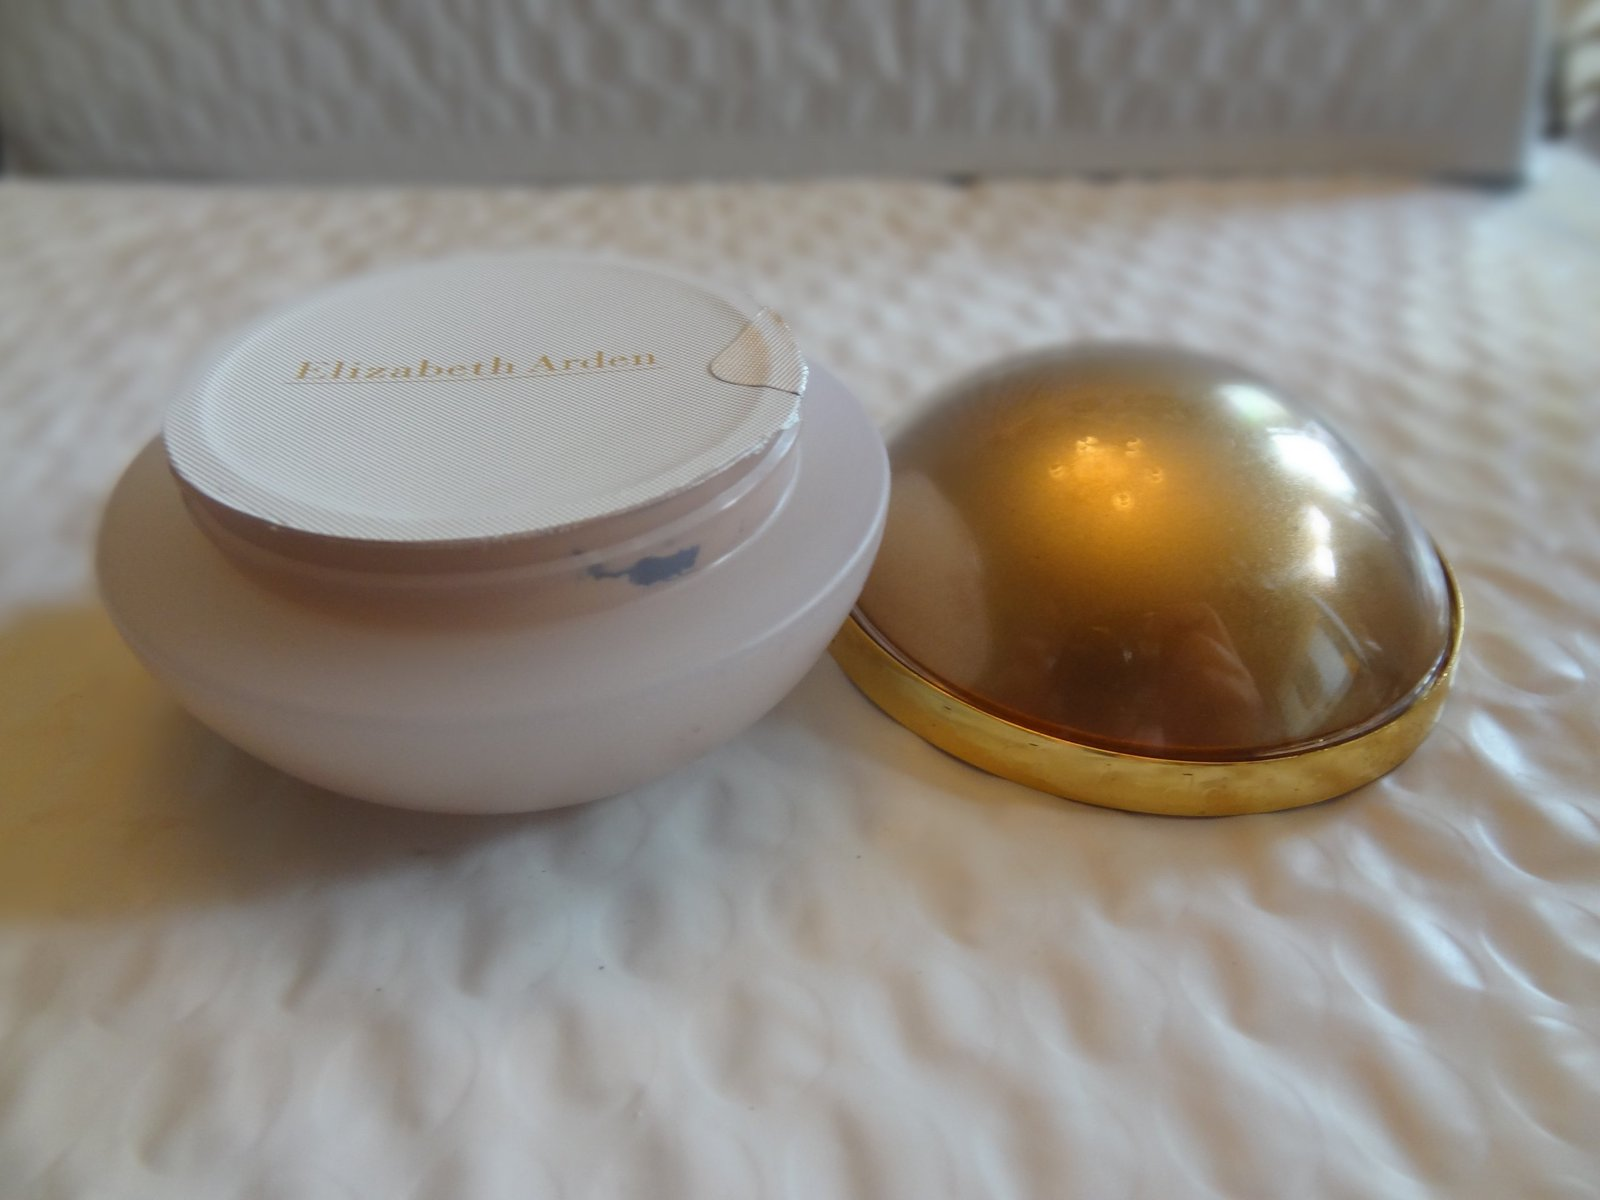 Primary image for Elizabeth Arden Flawless Finish Hydro Light Foundation Spf 10, Shell 39